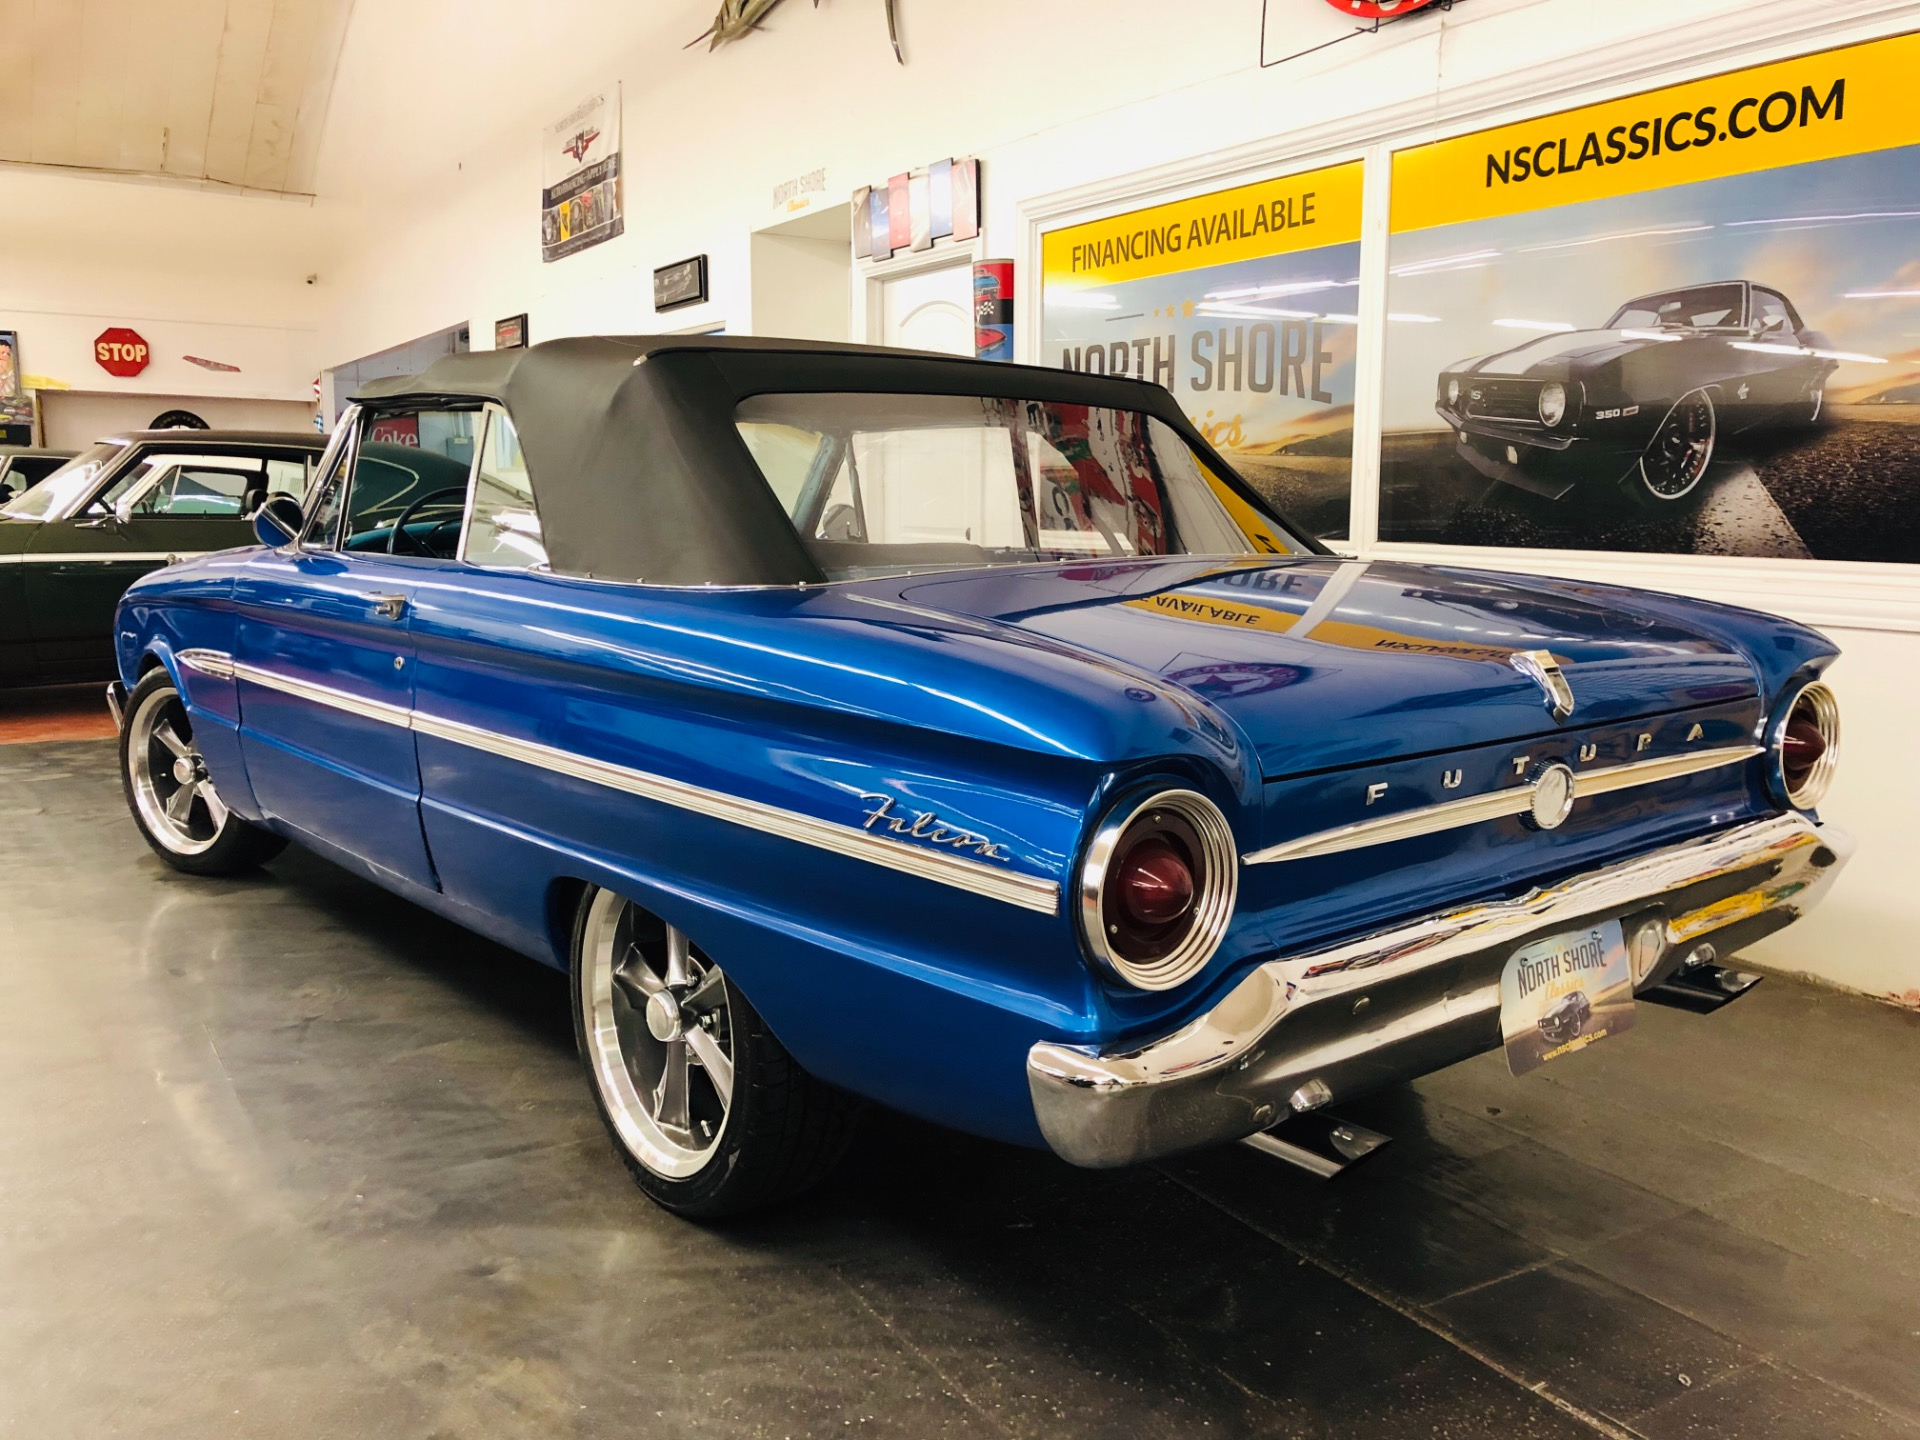 Used 1963 Ford Falcon -FUTURA-BLUE ANGEL-4 WHEEL DISC- CONVERTIBLE CLASSIC-SEE VIDEO | Mundelein, IL